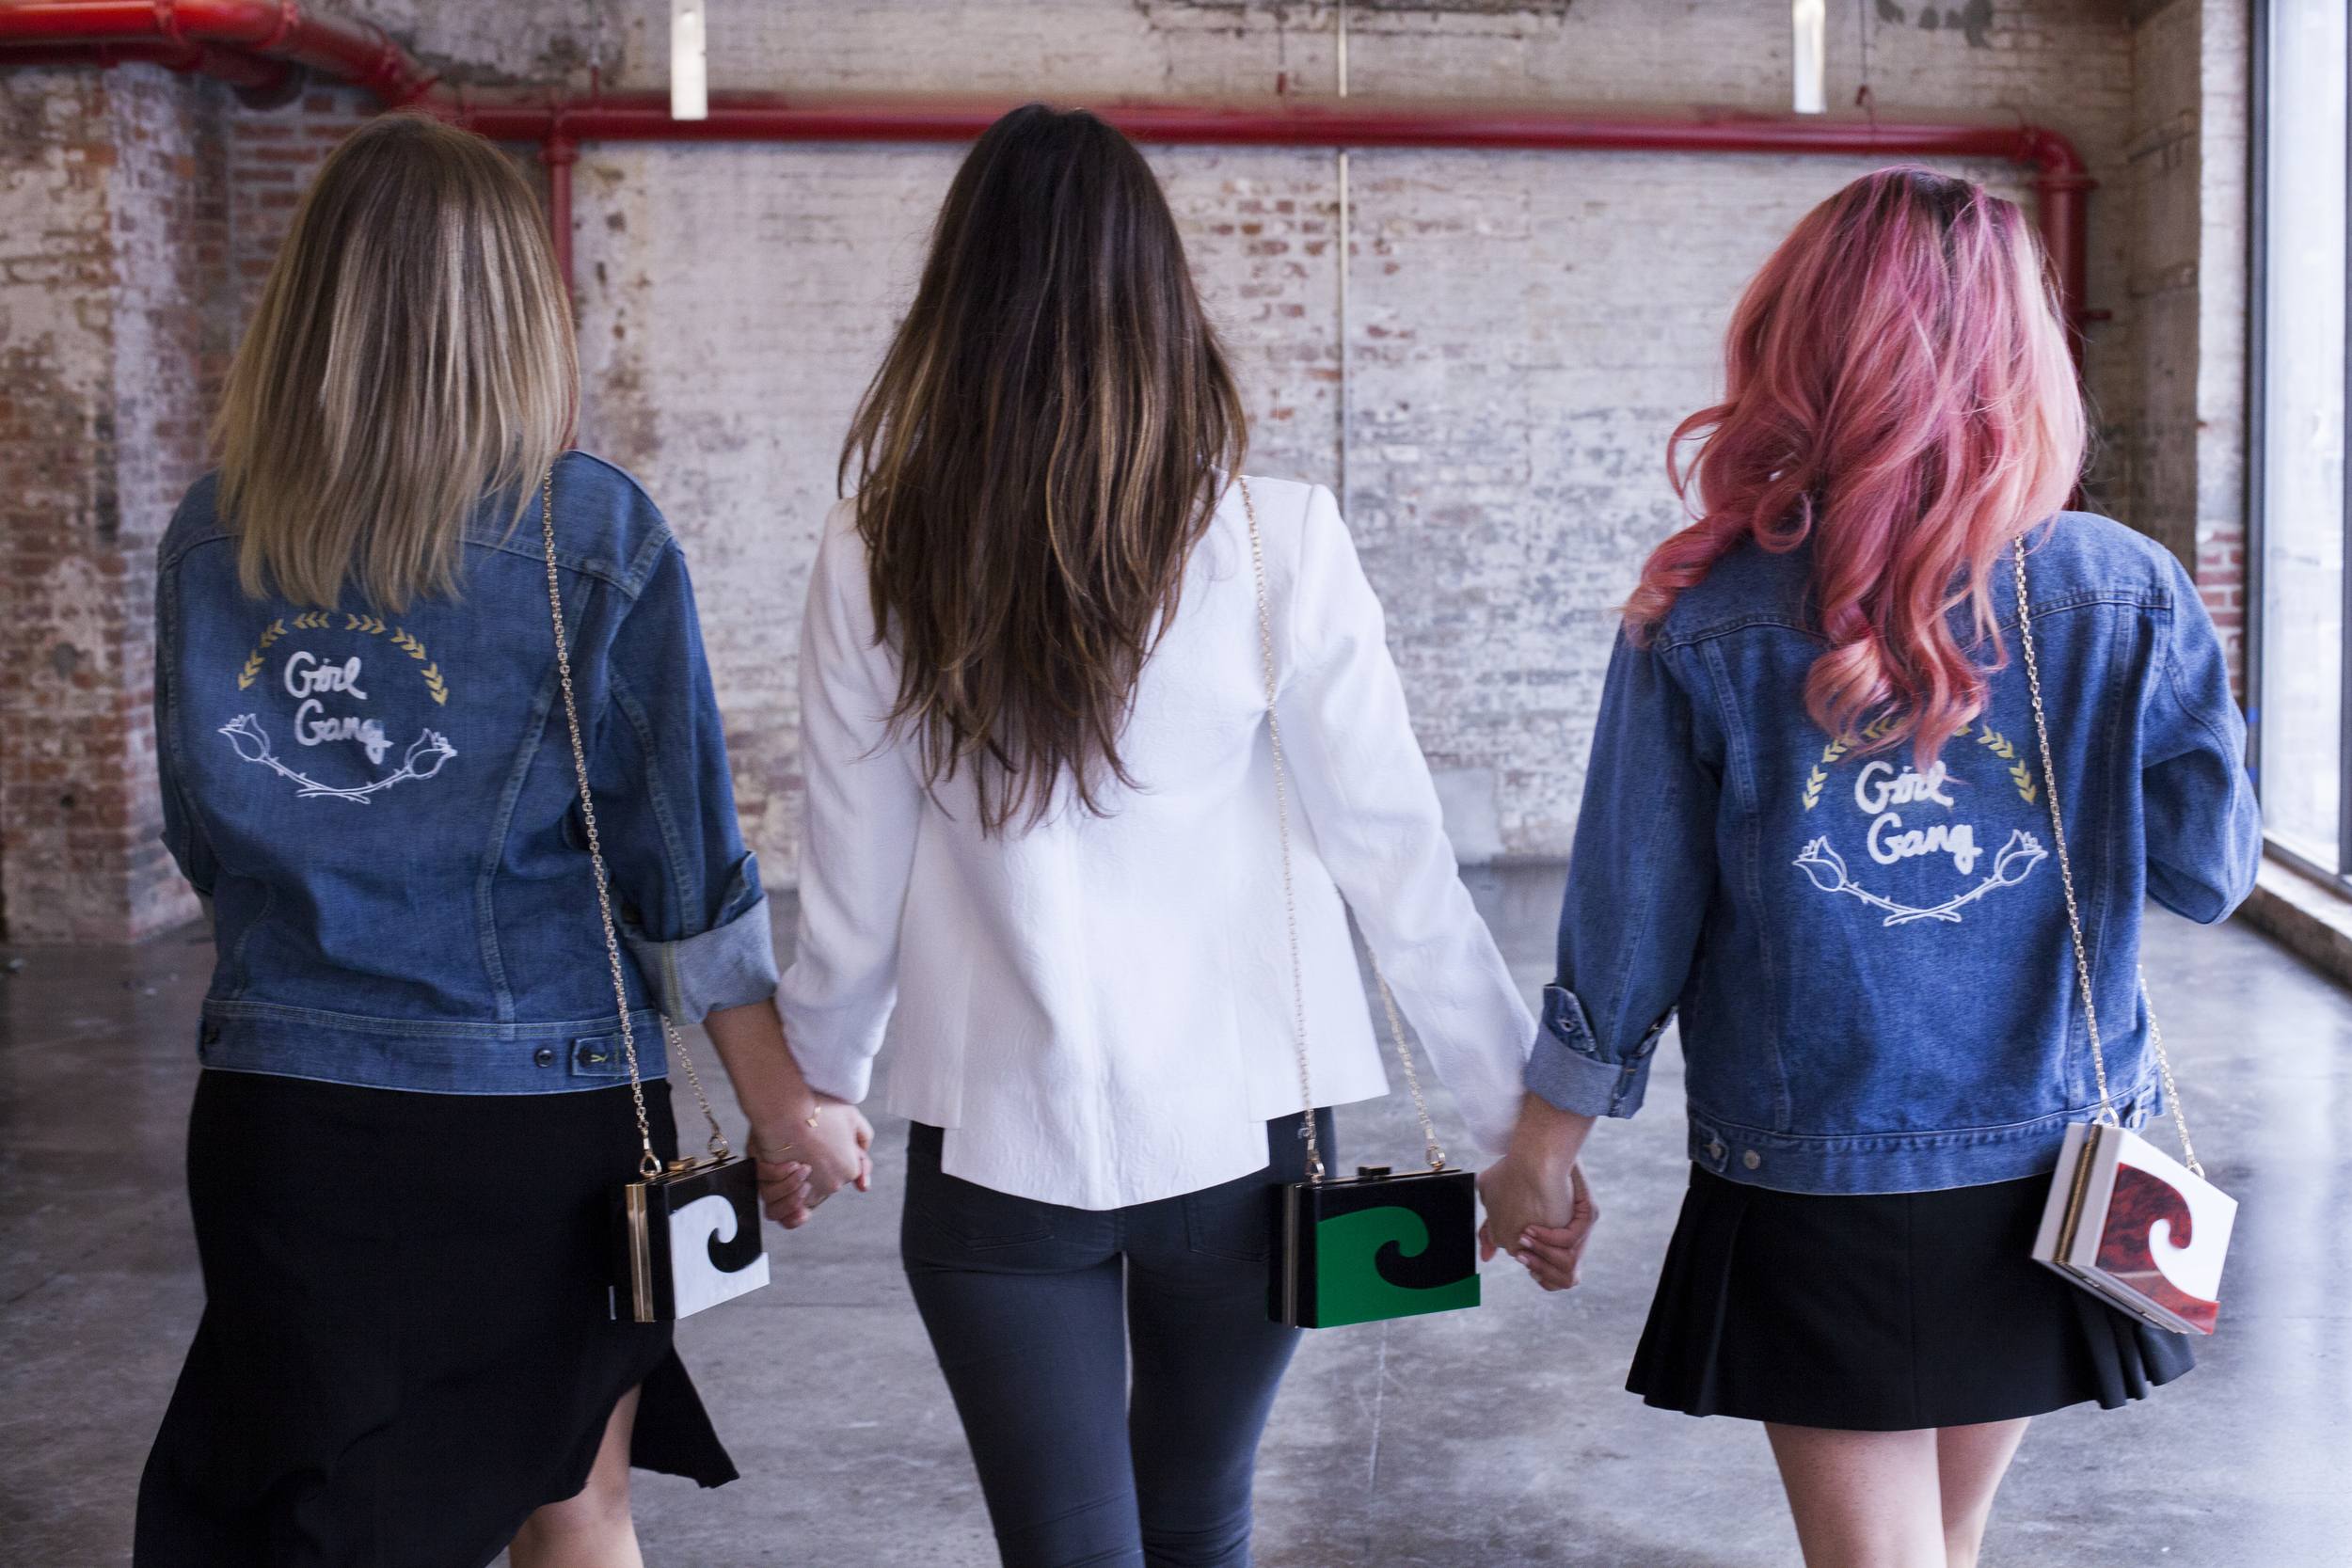 Girl Gang Inc - Rosie Siman, Melissa Serje, Katie Corcoran in Girl Gang Vintage Denim Jackets and Made in USA Two Eggs Box Clutch Wave Bag